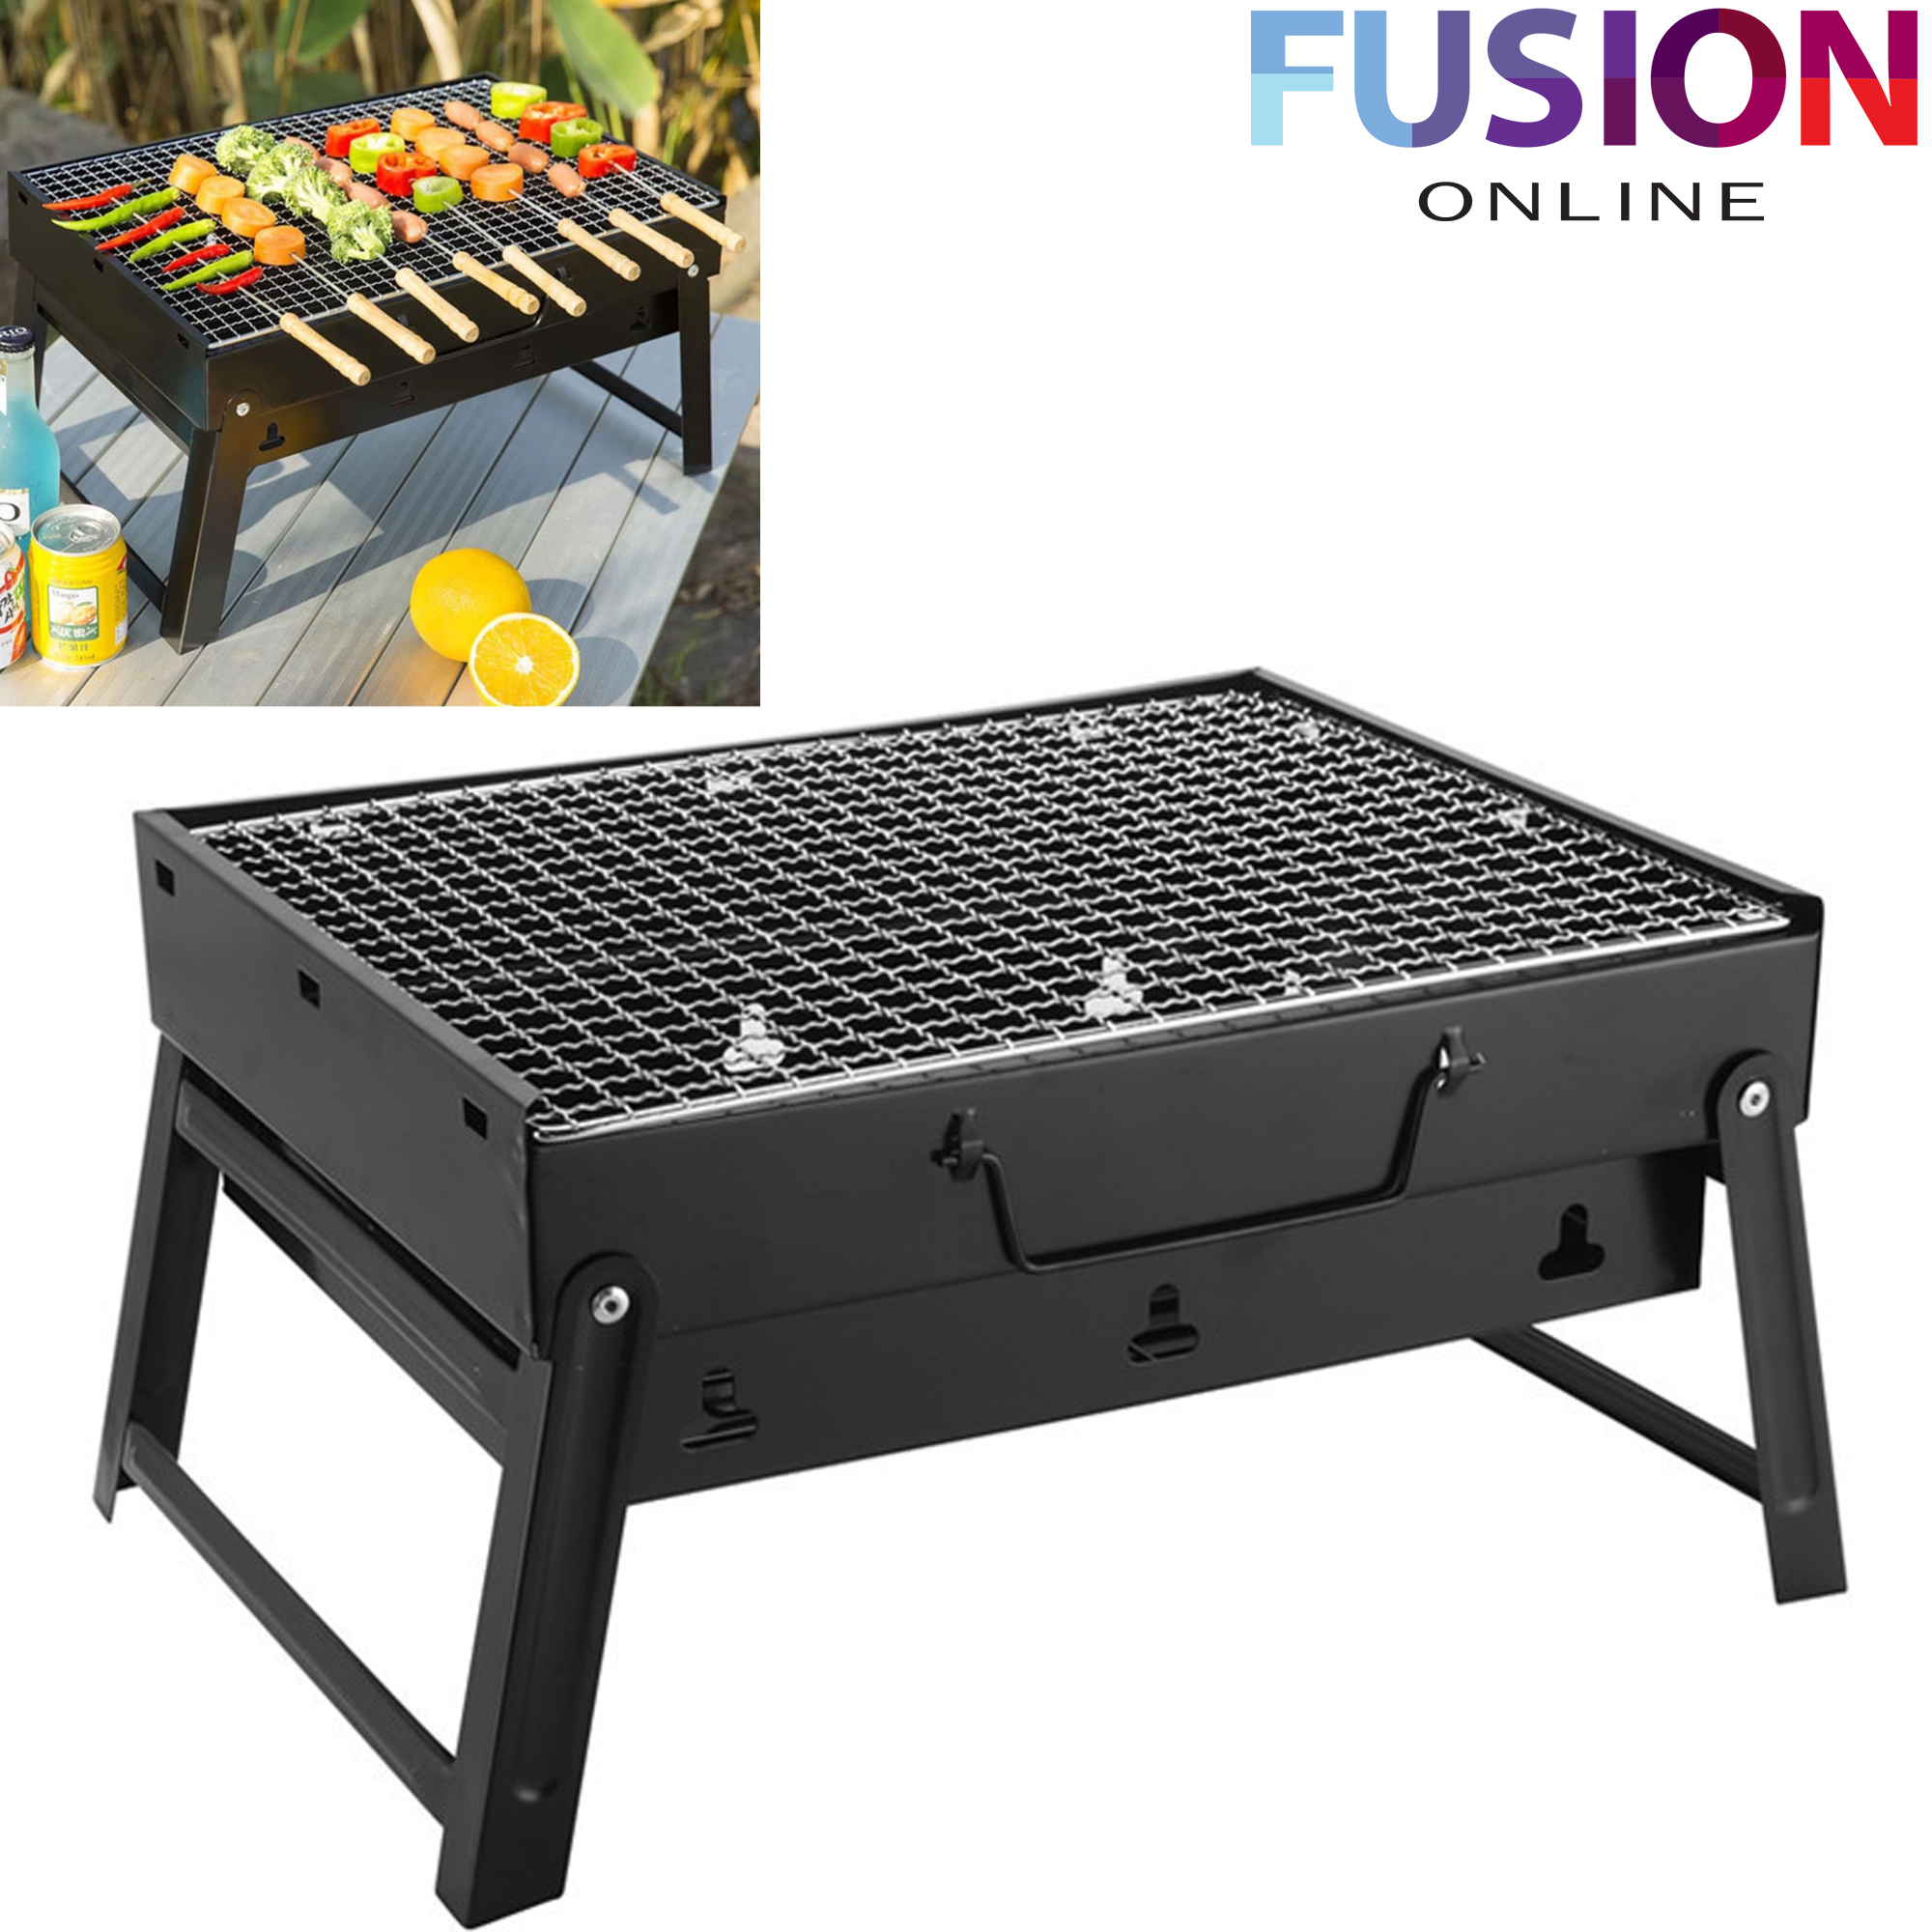 Outdoor Cooking & Eating New Garden Bbq Barbecue American Charcoal Bbq Grill Outdoor Bbqs Portable Yard, Garden & Outdoor Living